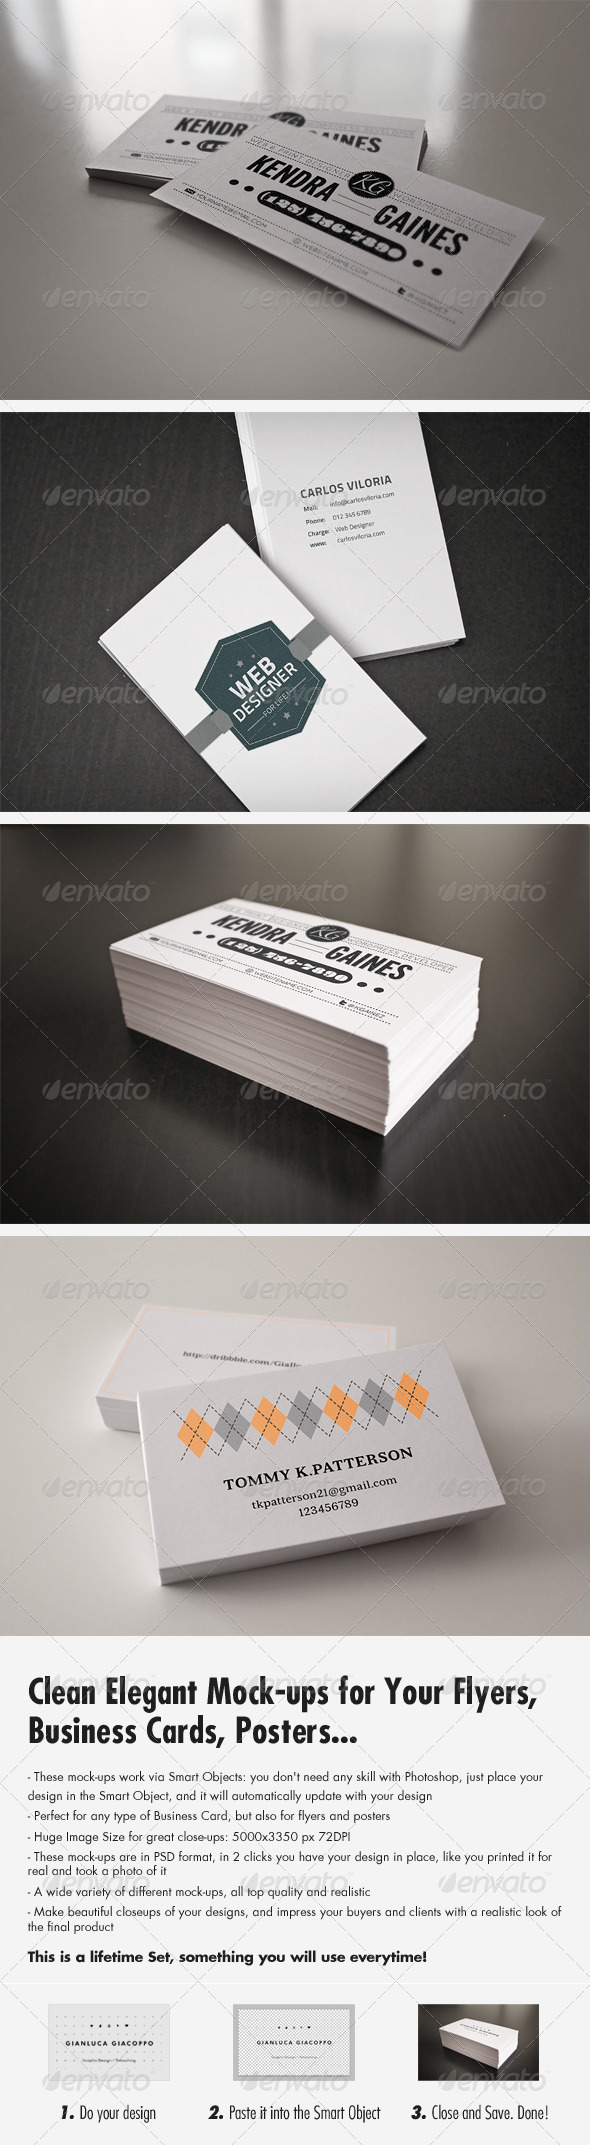 GraphicRiver Flyer Business Card Clean Realistic Mockups Set 1 3271279